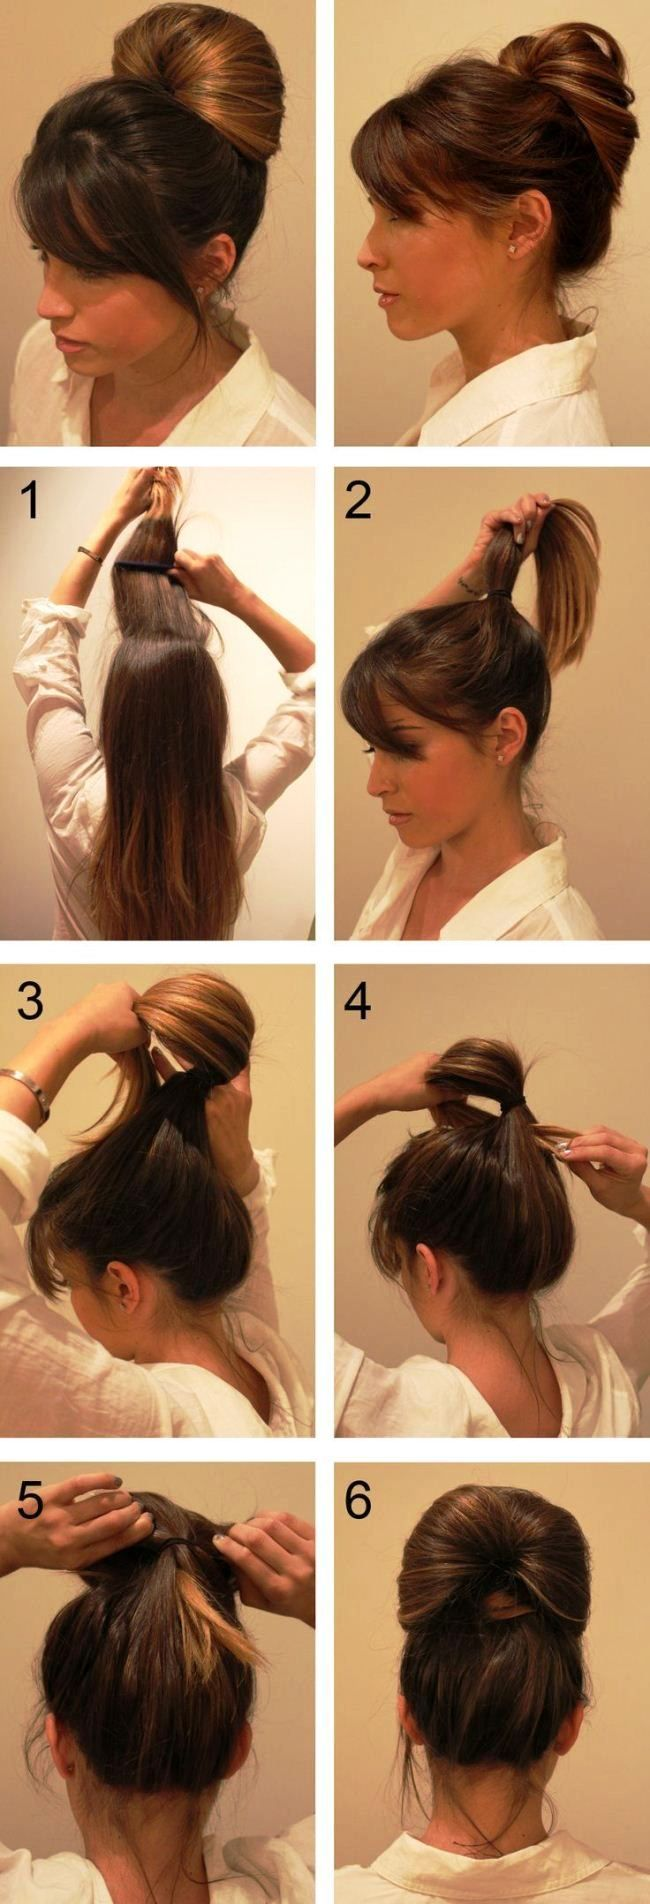 237 best party hairstyles for girl images on pinterest hairstyle simple party hairstyles for long hair tutorials step by step hairstyle weddingdiy solutioingenieria Choice Image